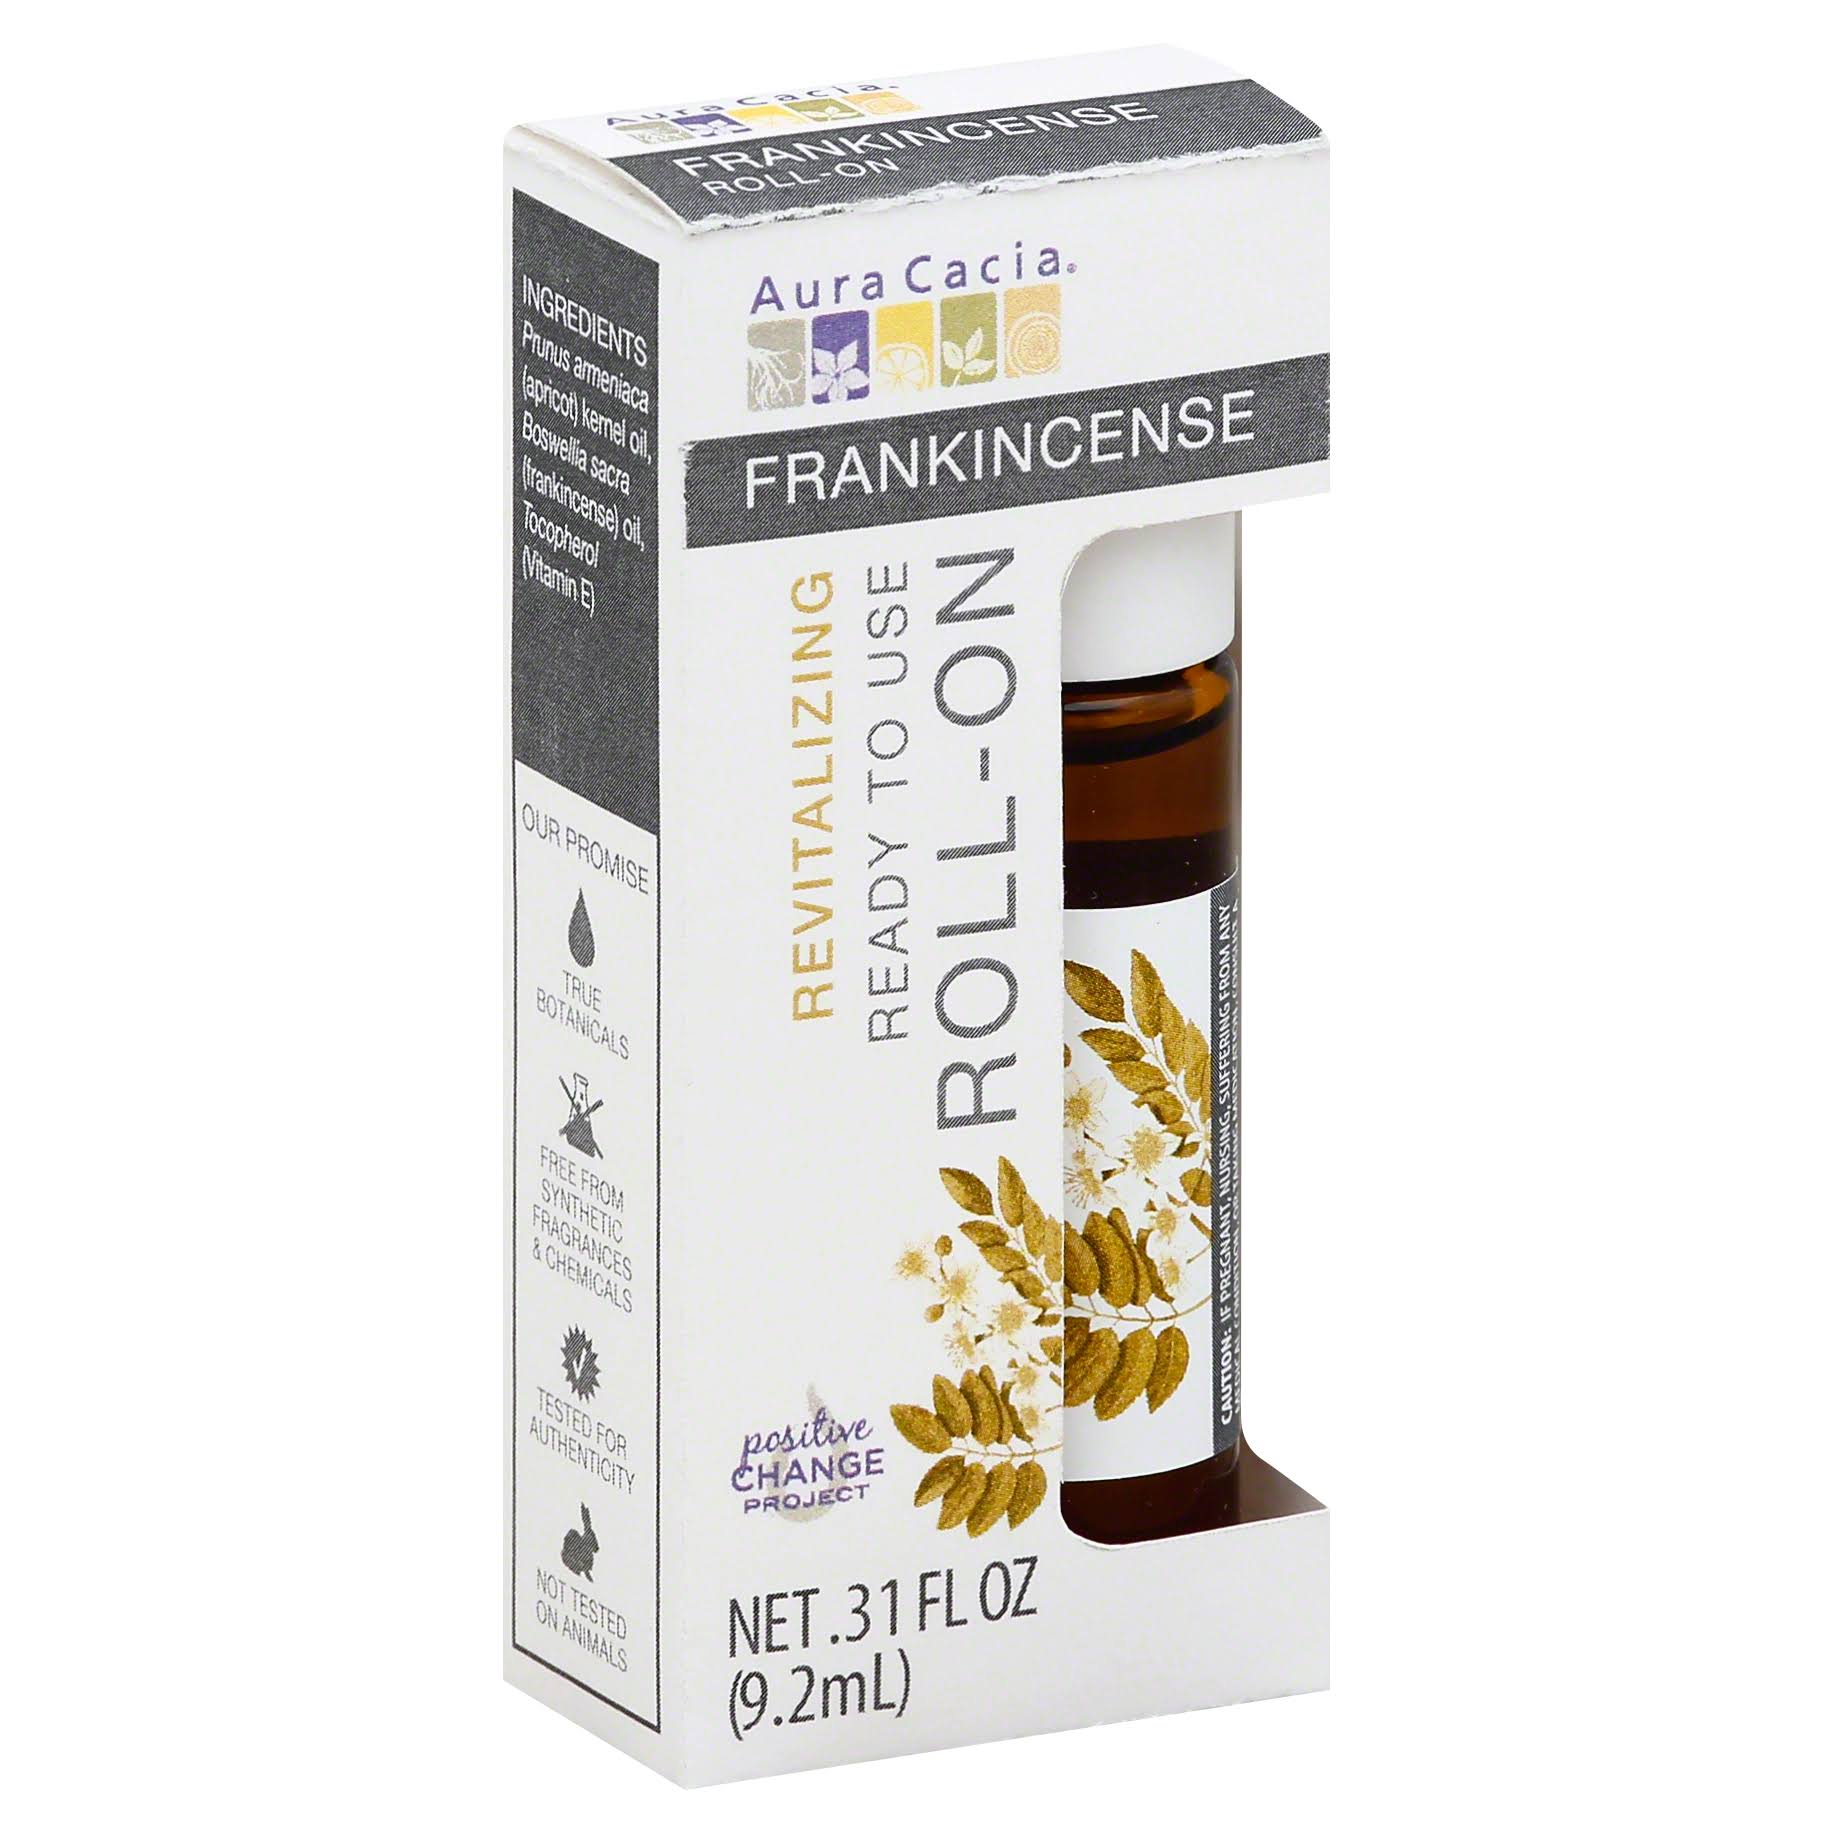 Aura Cacia Roll-On Essential Oil - Frankincense, 10ml